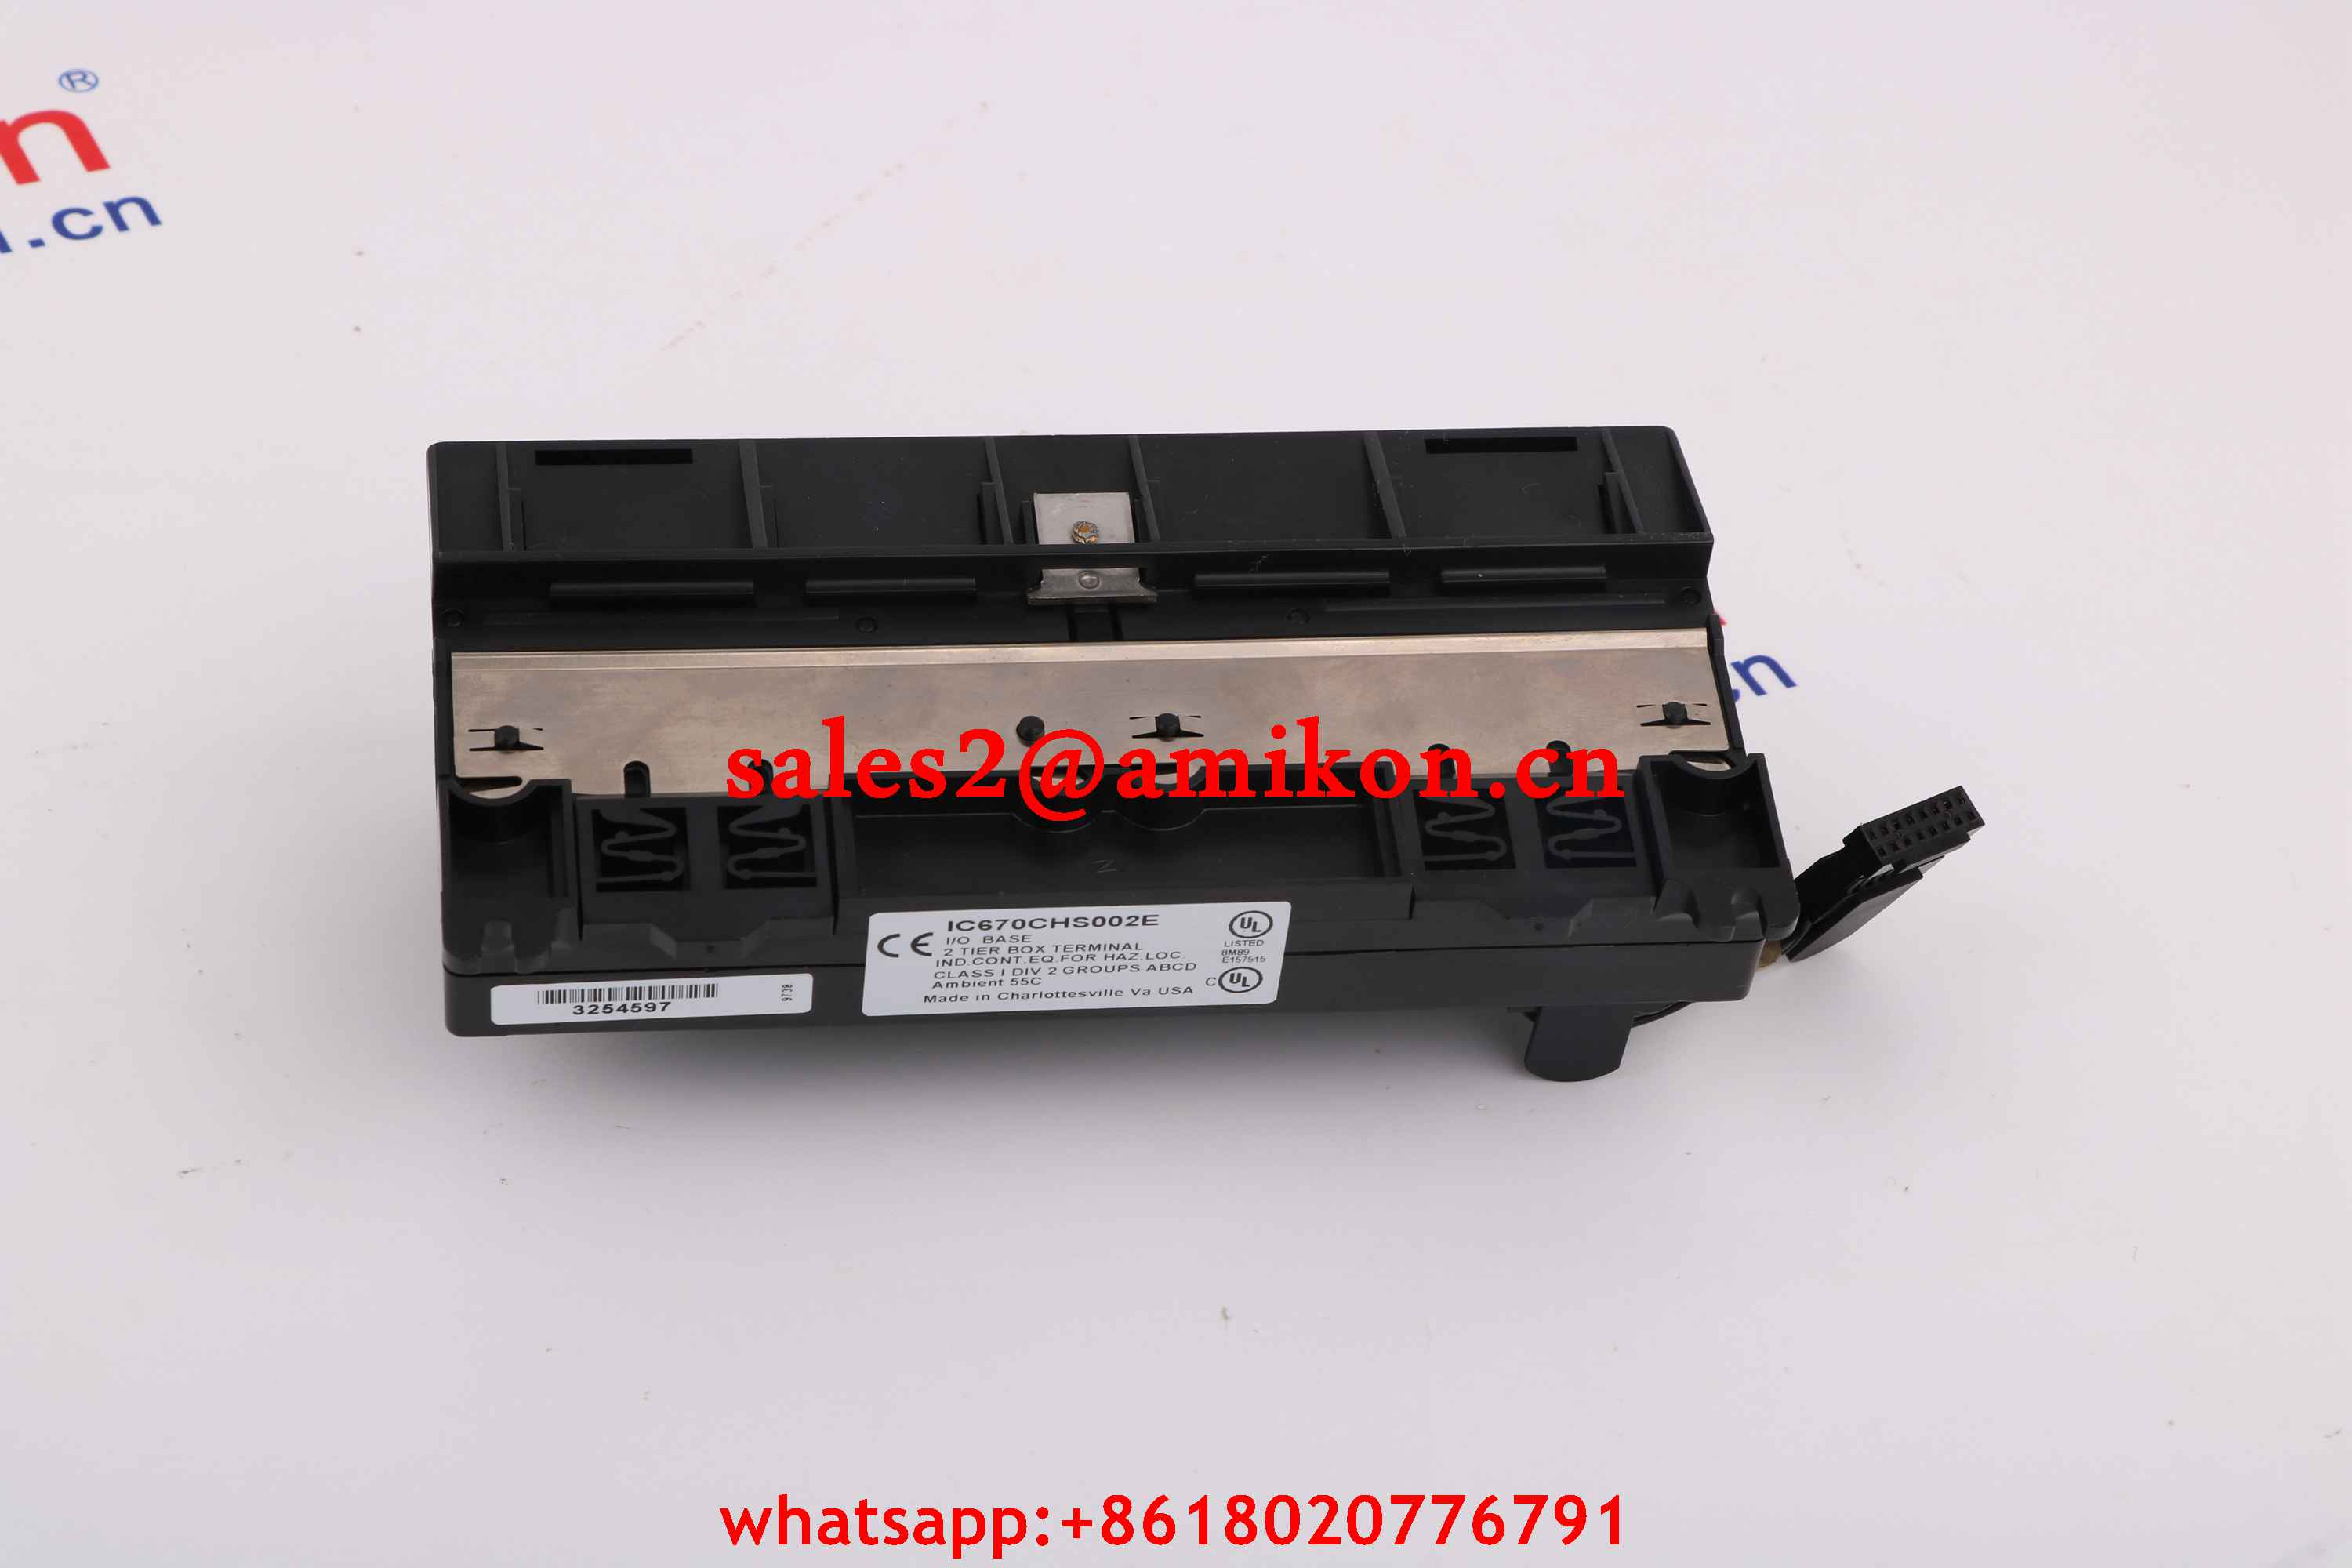 GE FANUC DS3820STMA new and Original USA 1 year warranty